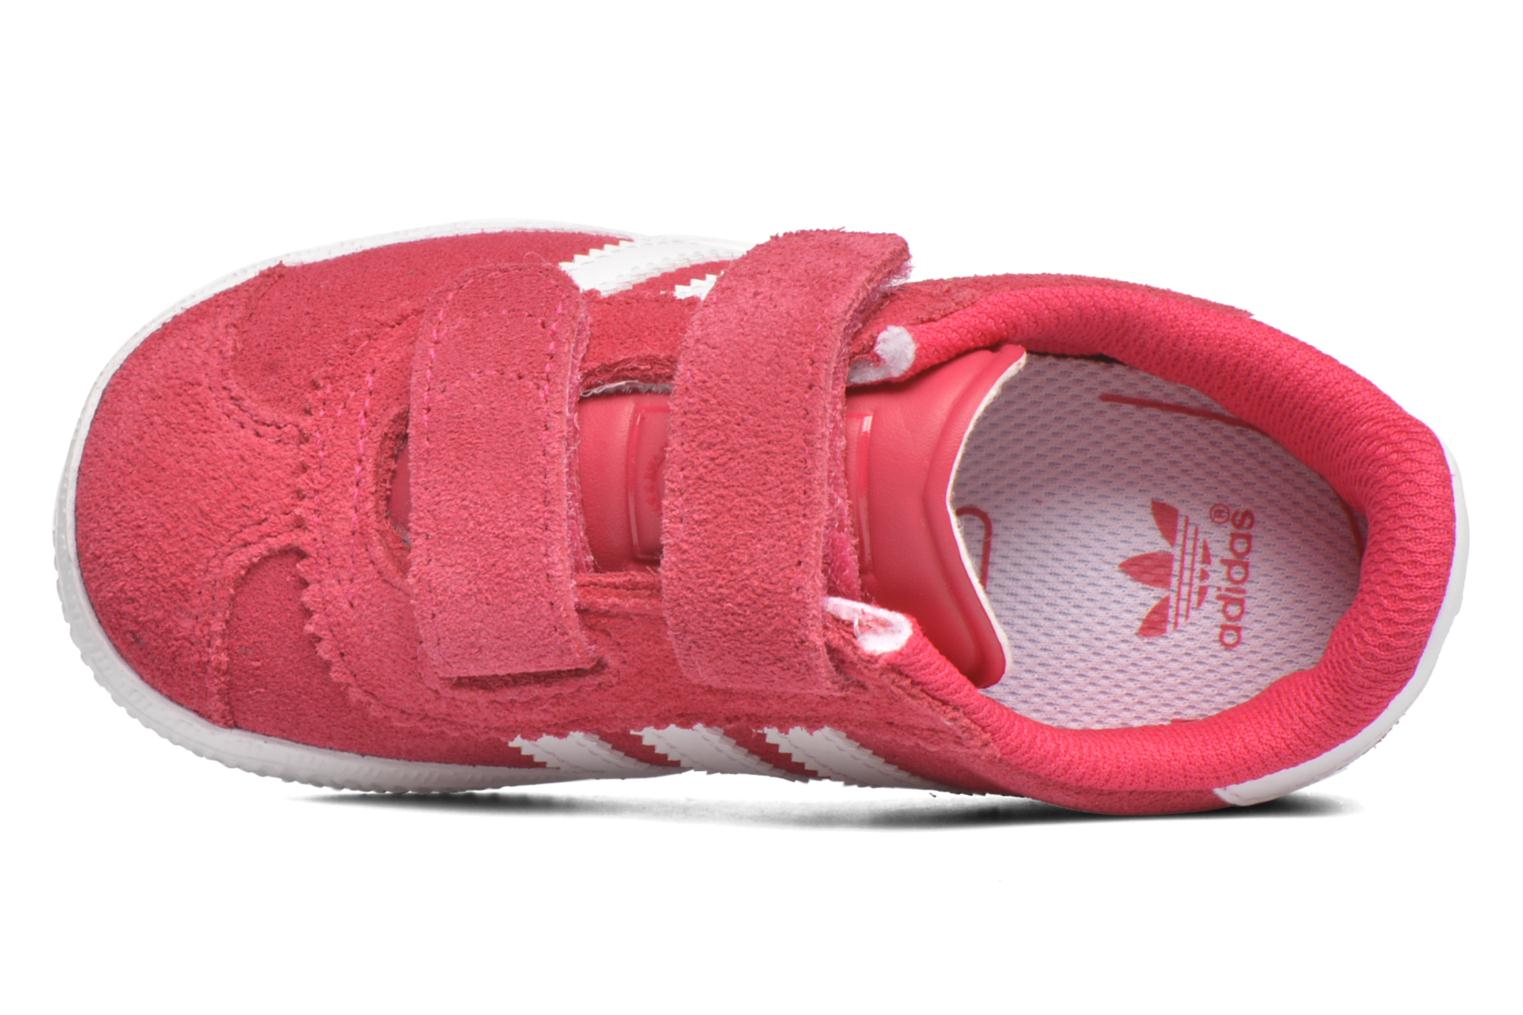 Trainers Adidas Originals Gazelle 2 CF I Pink view from the left